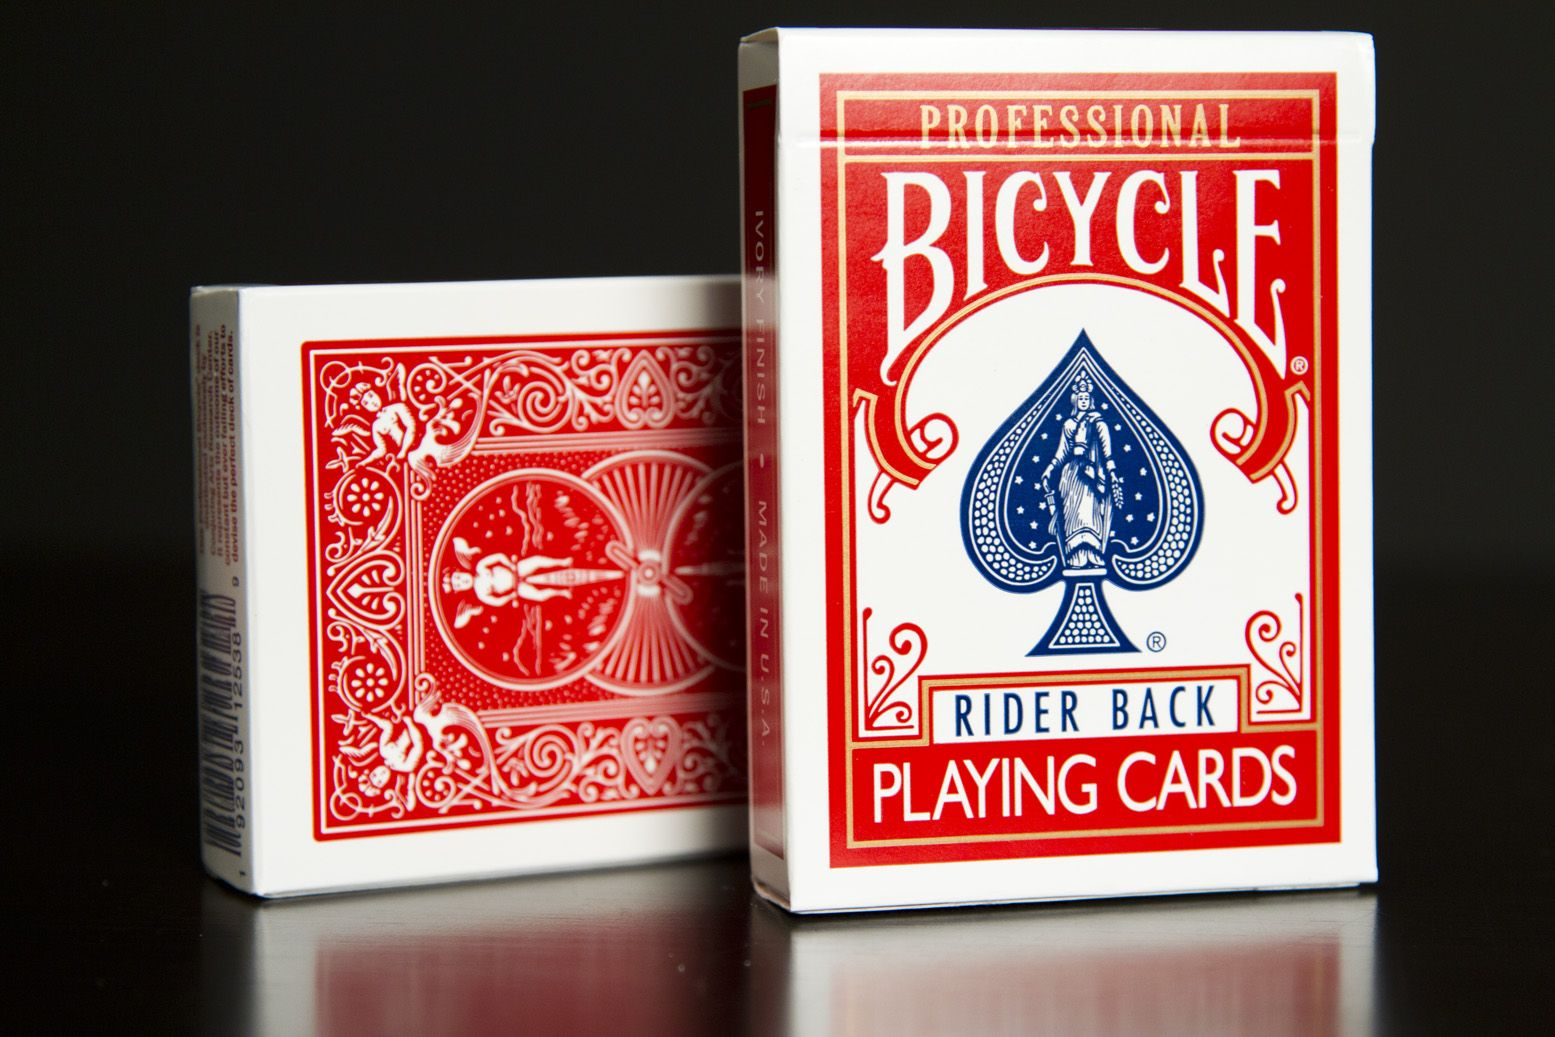 bicycle cards - rider back professional | PLAYING CARDS ...